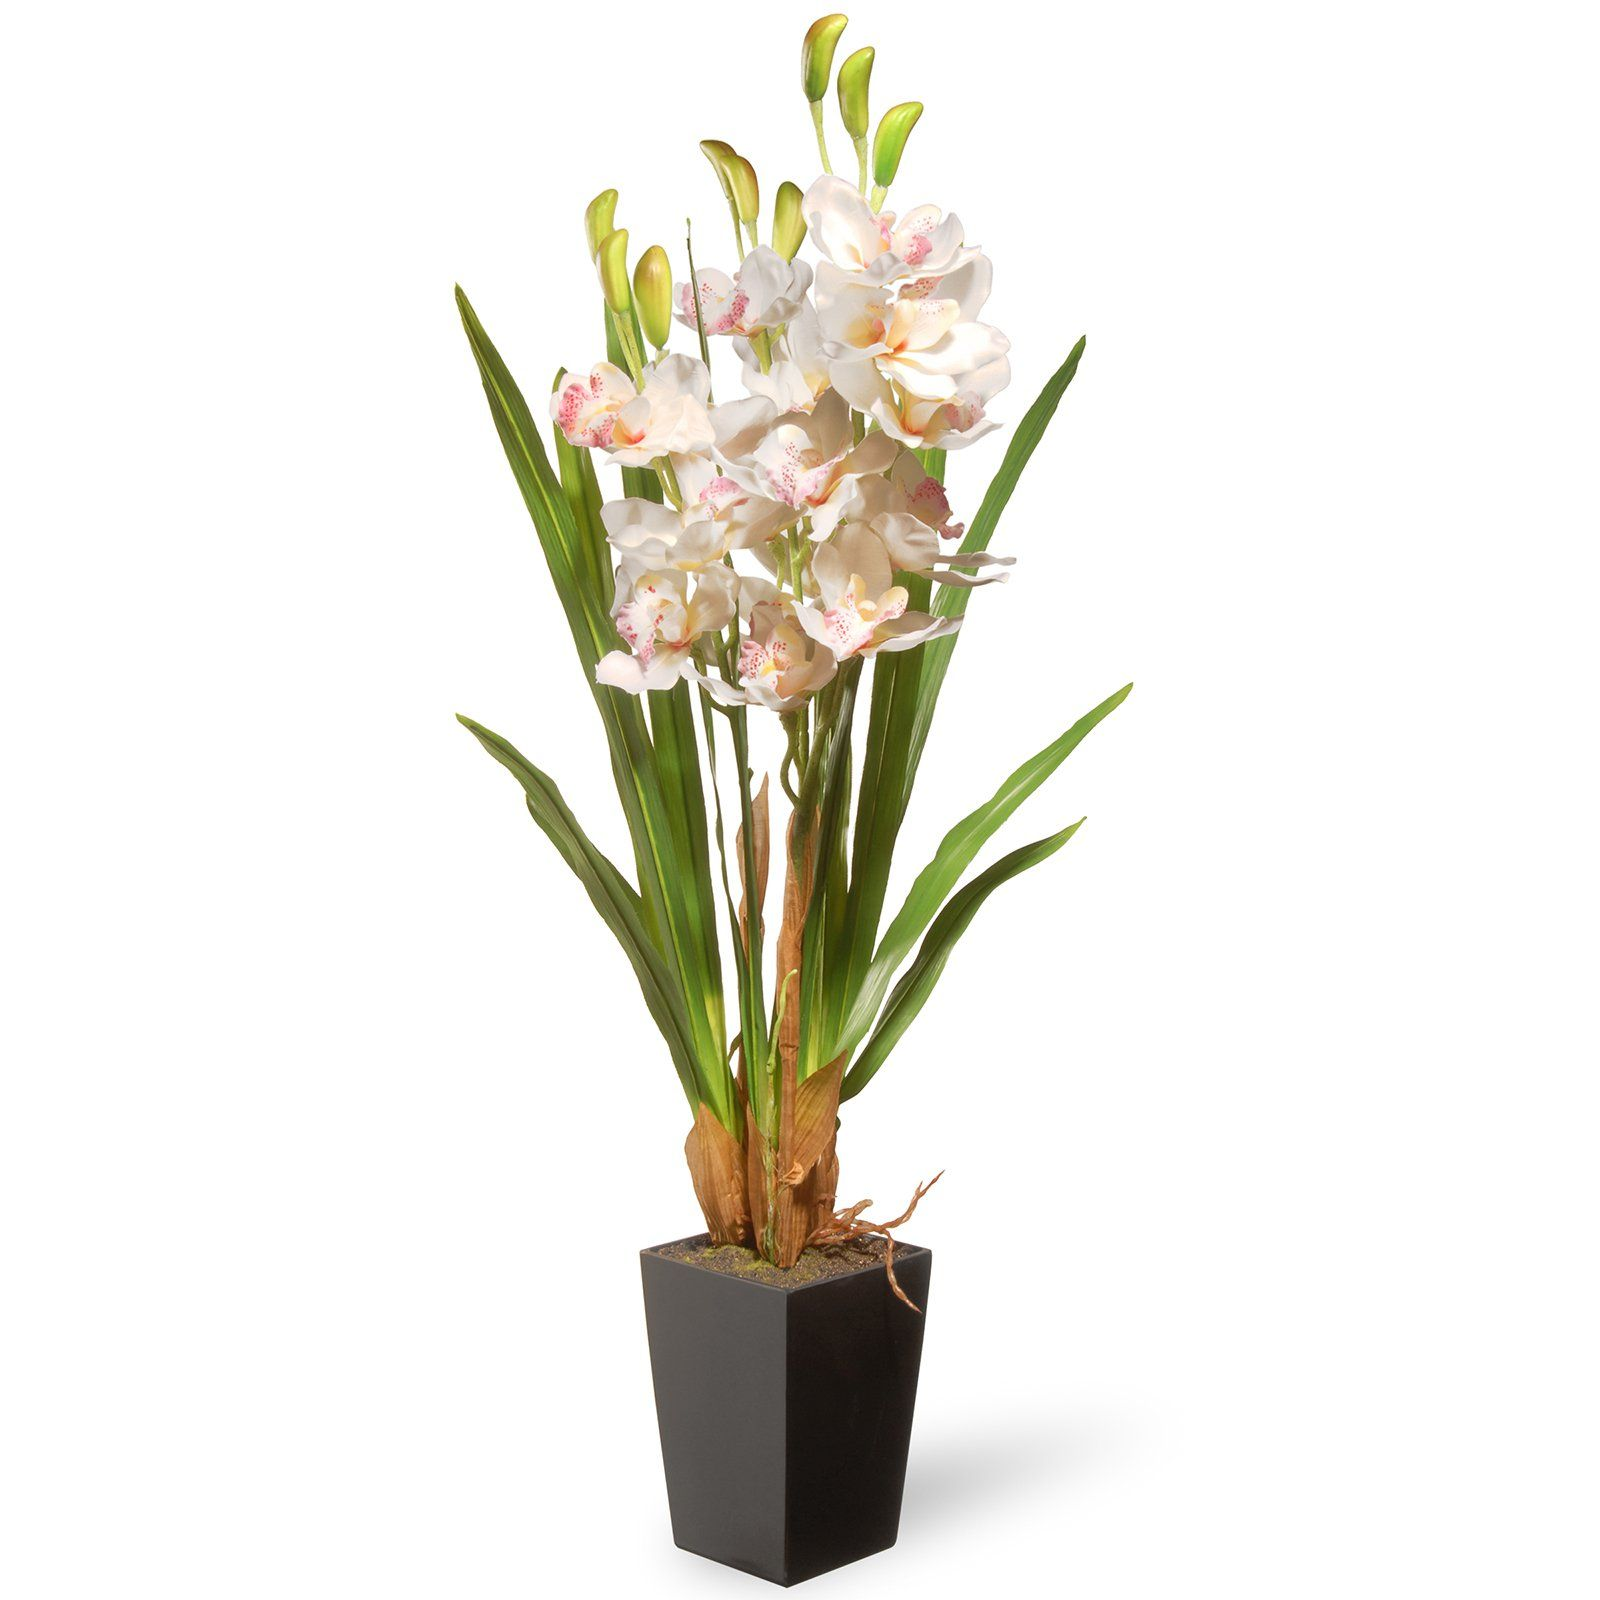 National tree company 33 in potted spring orchid silk flower nf36 national tree company 33 in potted spring orchid silk flower nf36 5285s mightylinksfo